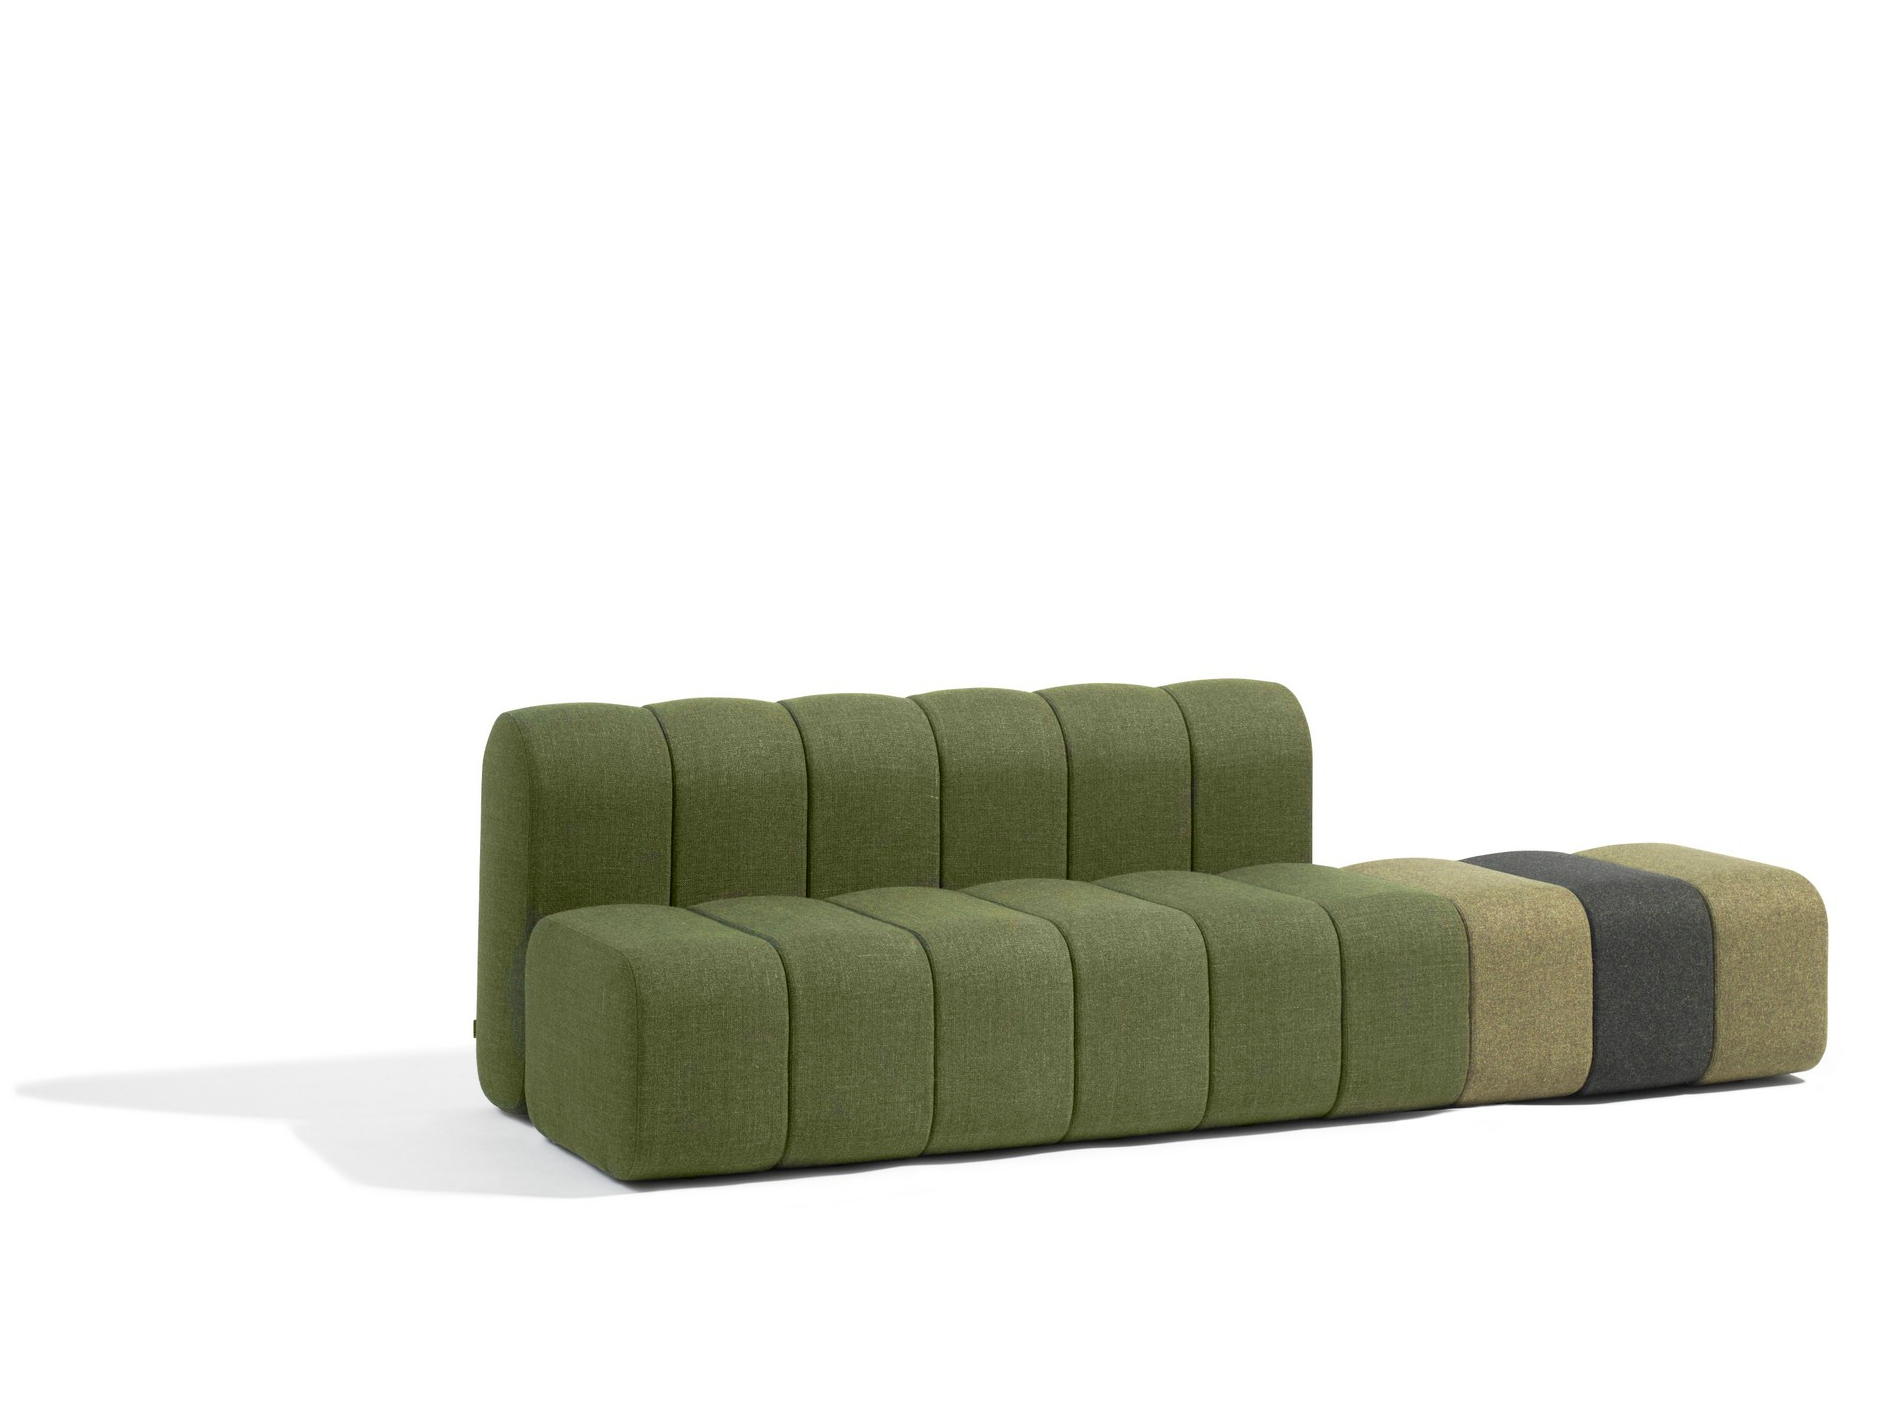 Bob sofa playpen sectional surprises bob s furniture you for Playpen sectional sofa bobs